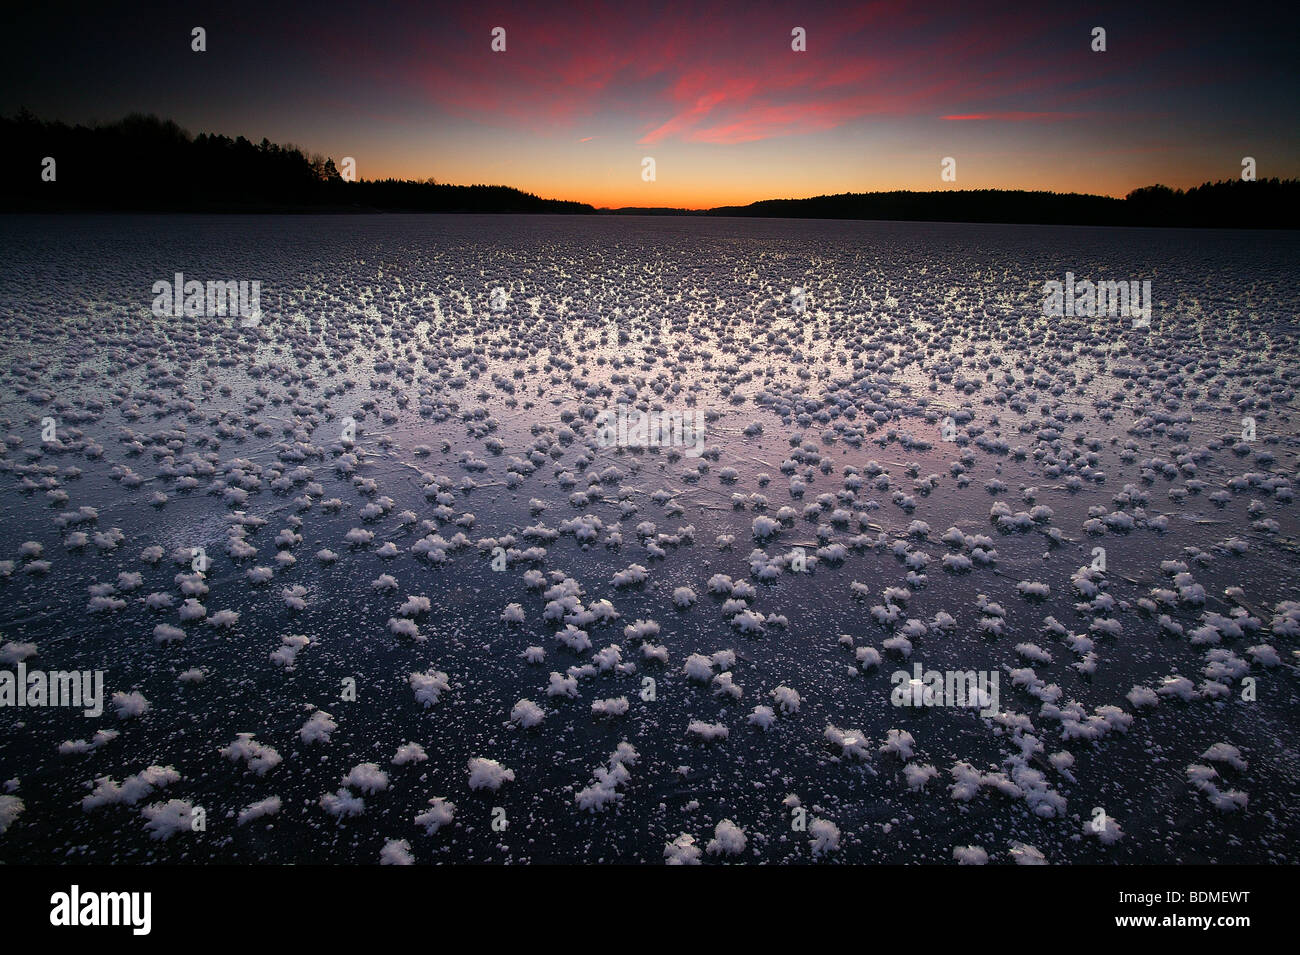 Frost roses on the ice on a winter evening at Vanemfjorden in the lake Vansjø in Østfold, Norway. - Stock Image